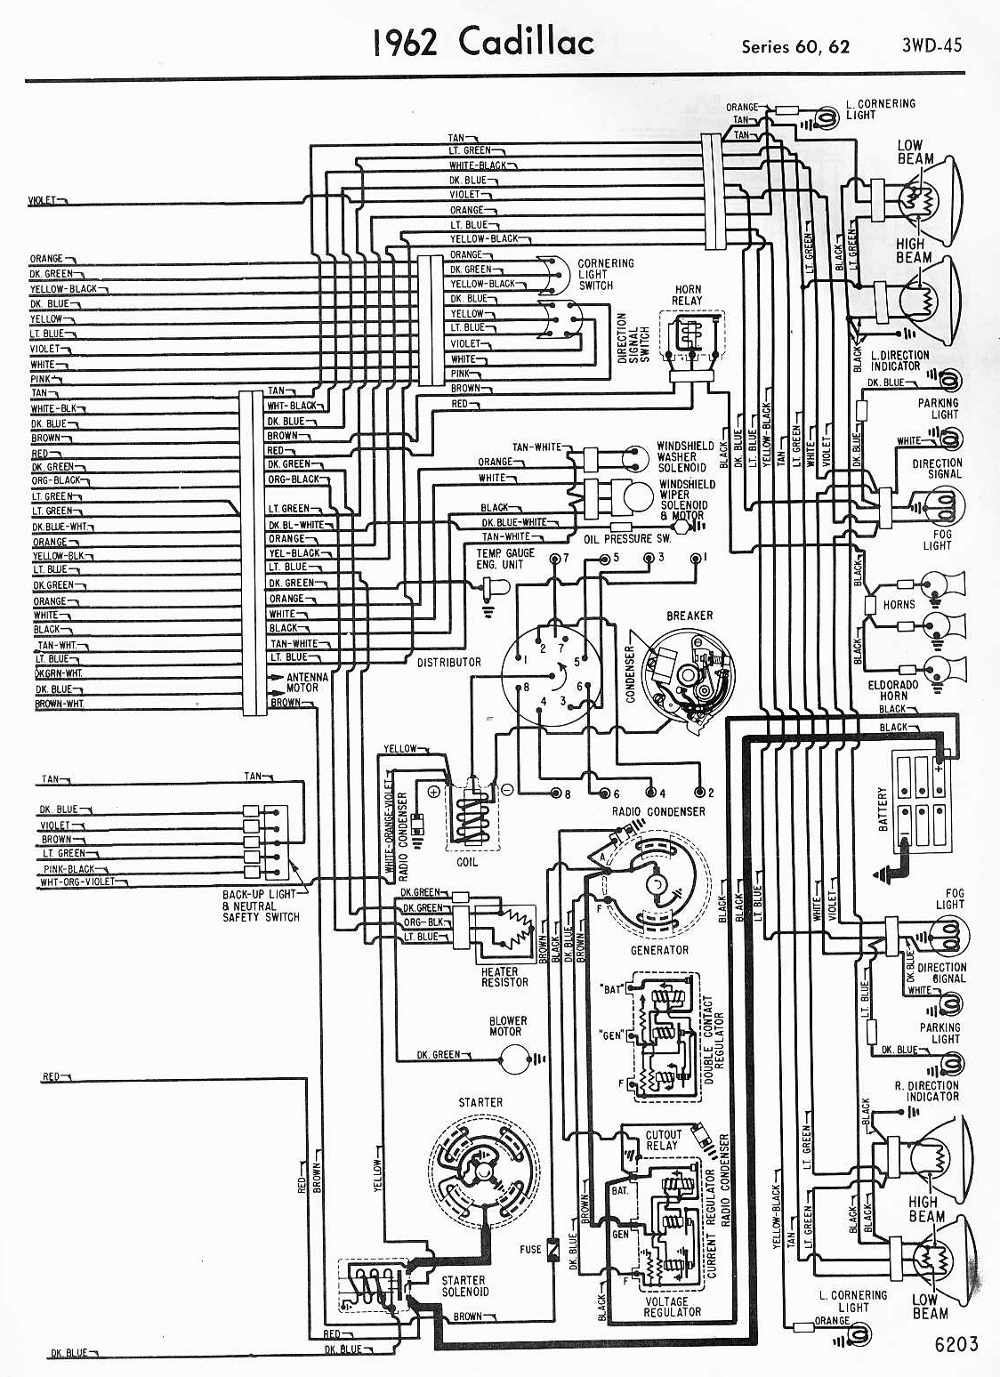 wiring diagrams schematics 1962 cadillac series 60 and 62 part 2 [ 1000 x 1377 Pixel ]